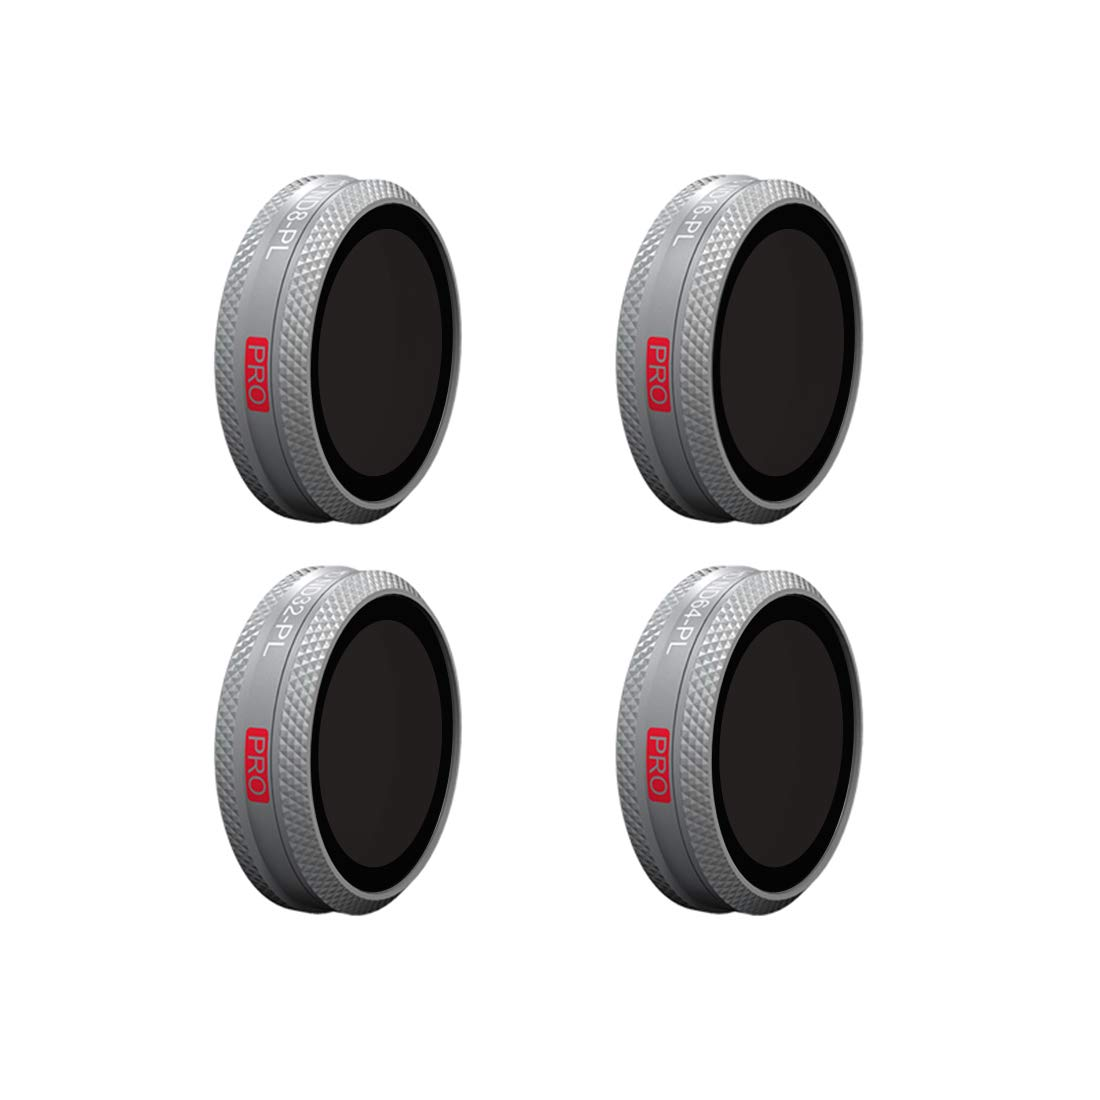 MRKE Filtros, PGYTECH Combo 4Pcs ND/PL Filters Set para dji Mavic 2 Zoom Fly More Kit - ND8/PL + ND16/PL + ND32/PL + ND64/PL